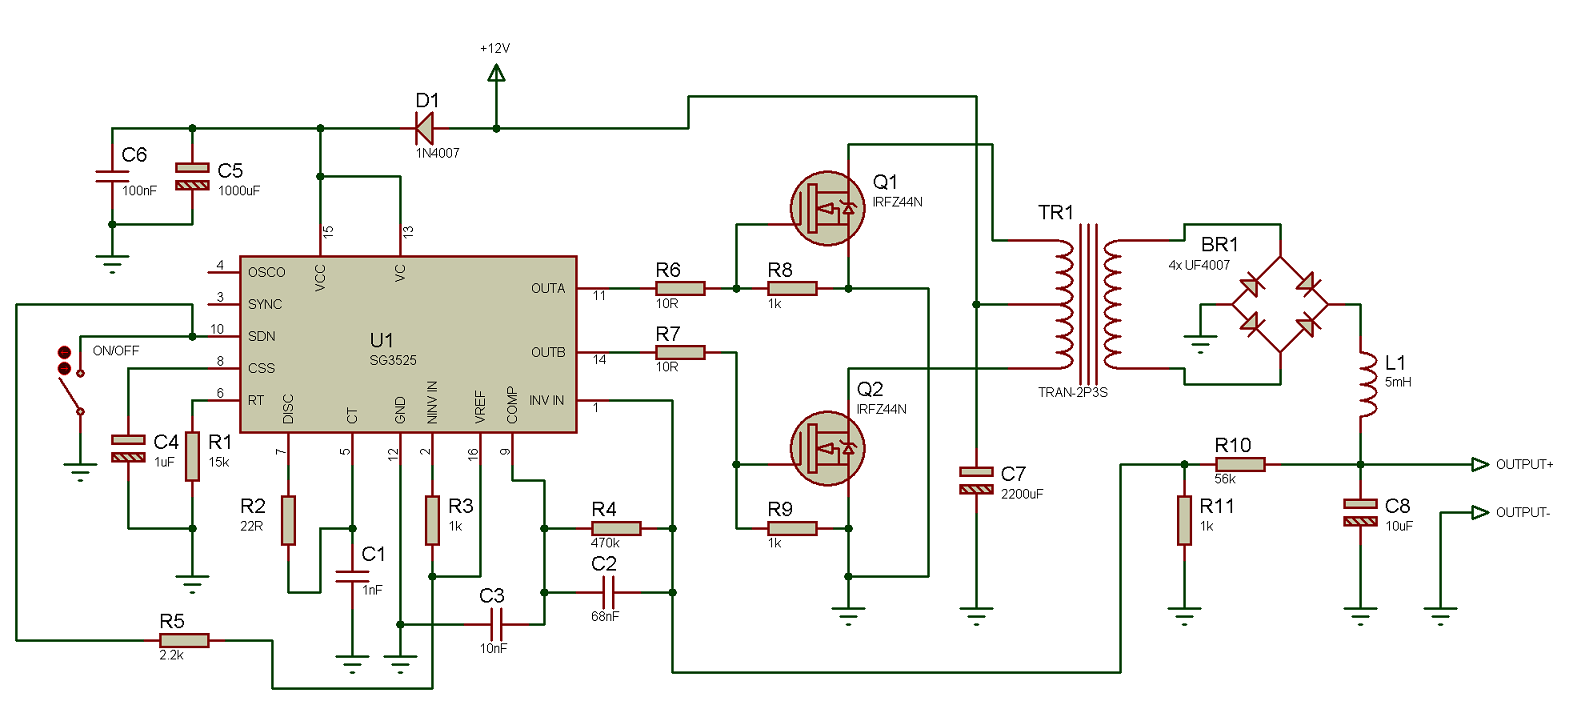 Tahmids Blog Using The Sg3525 Pwm Controller Explanation And Understand Dc Circuit Operation Lets Analyze It See What Ive Done